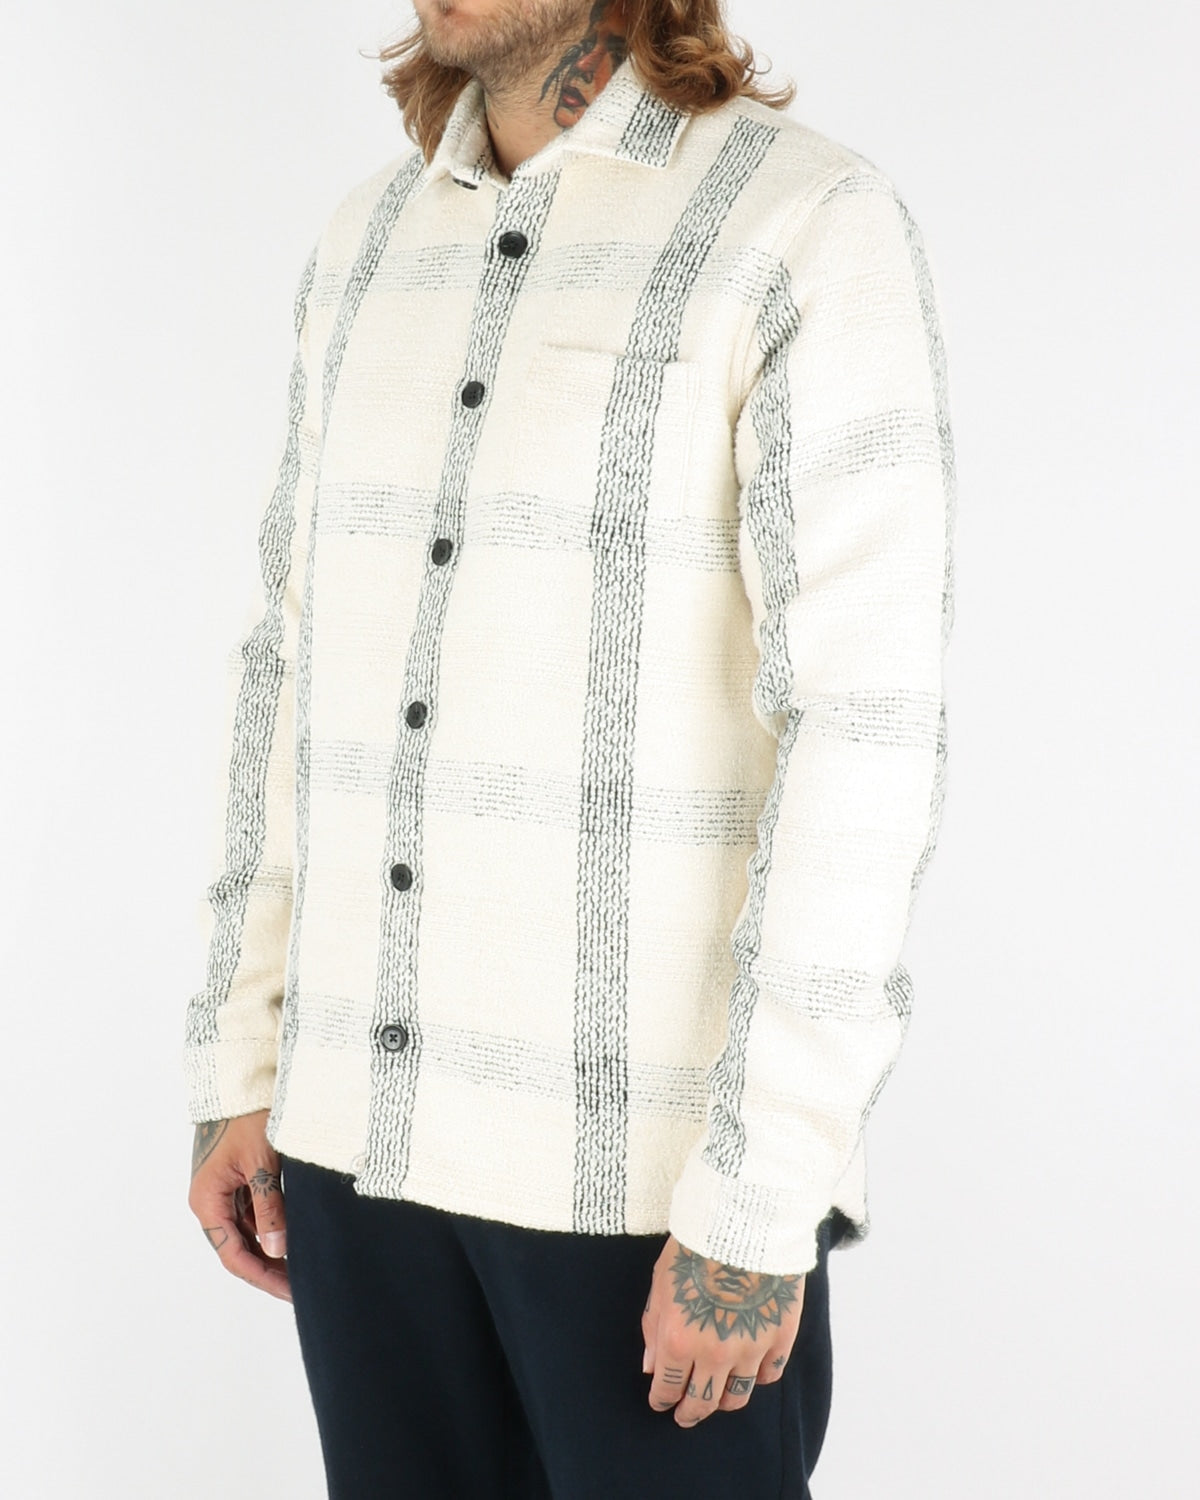 libertine libertine_miracle shirt_offwhite check_view_2_3